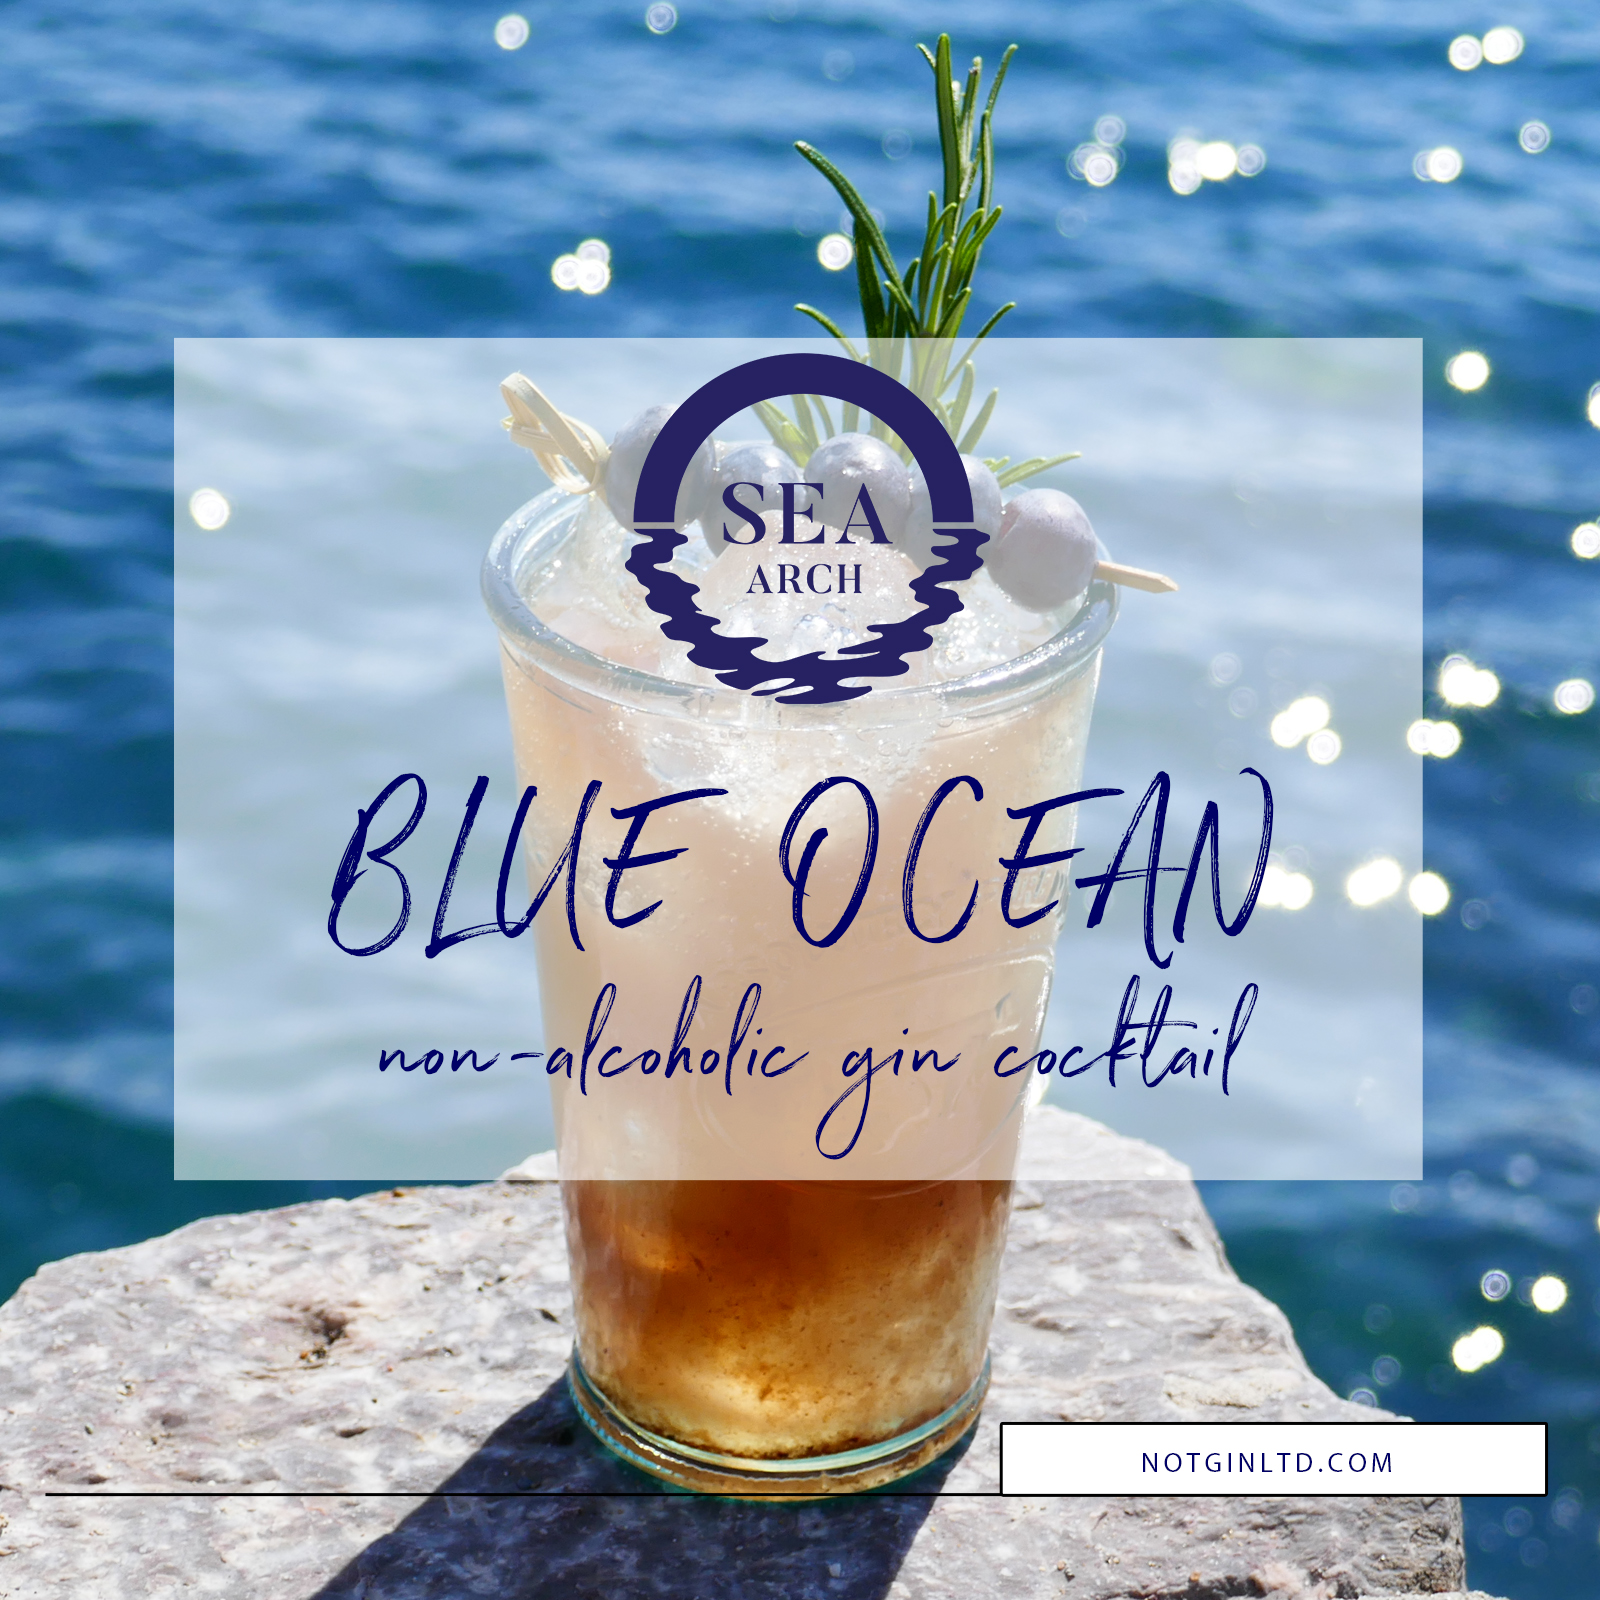 Blue Ocean non-alcoholic gin cocktail